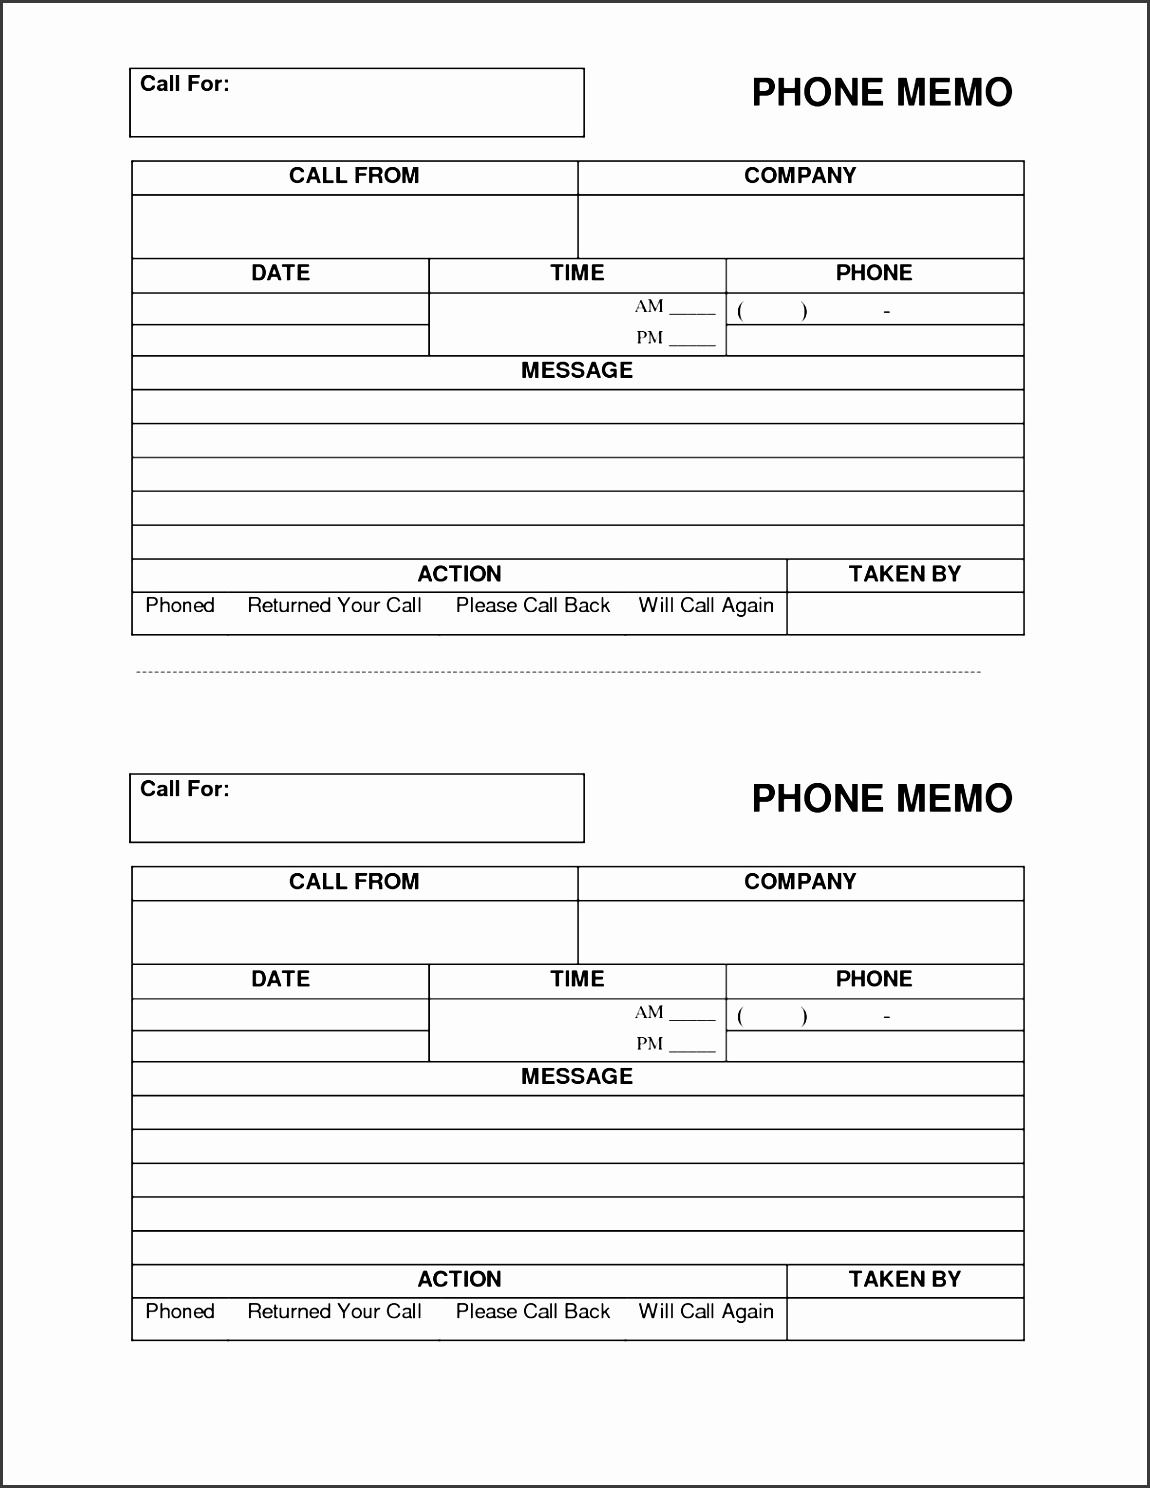 phone message template febot unique phone message log template medical phone message